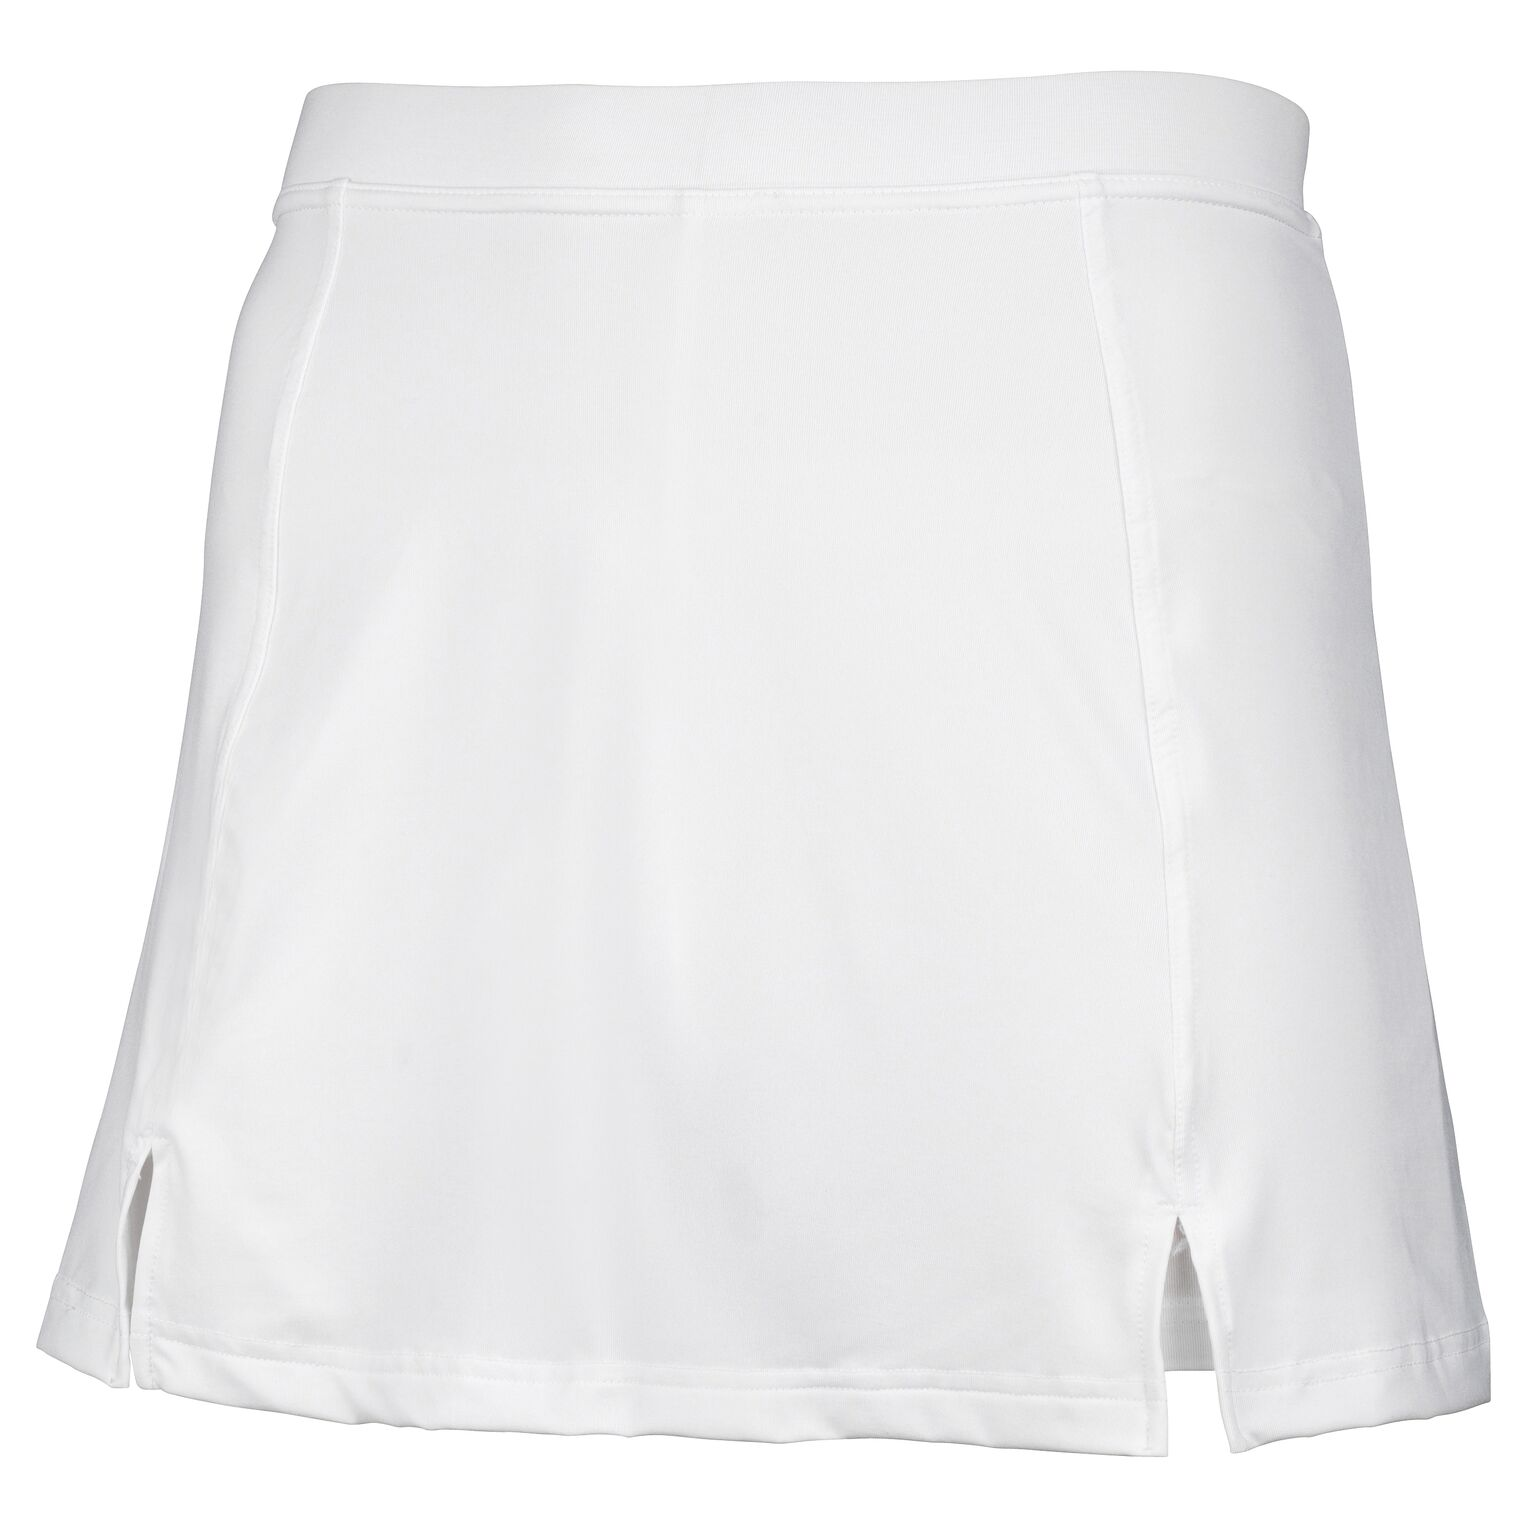 Women's Rhino sports performance skort - White